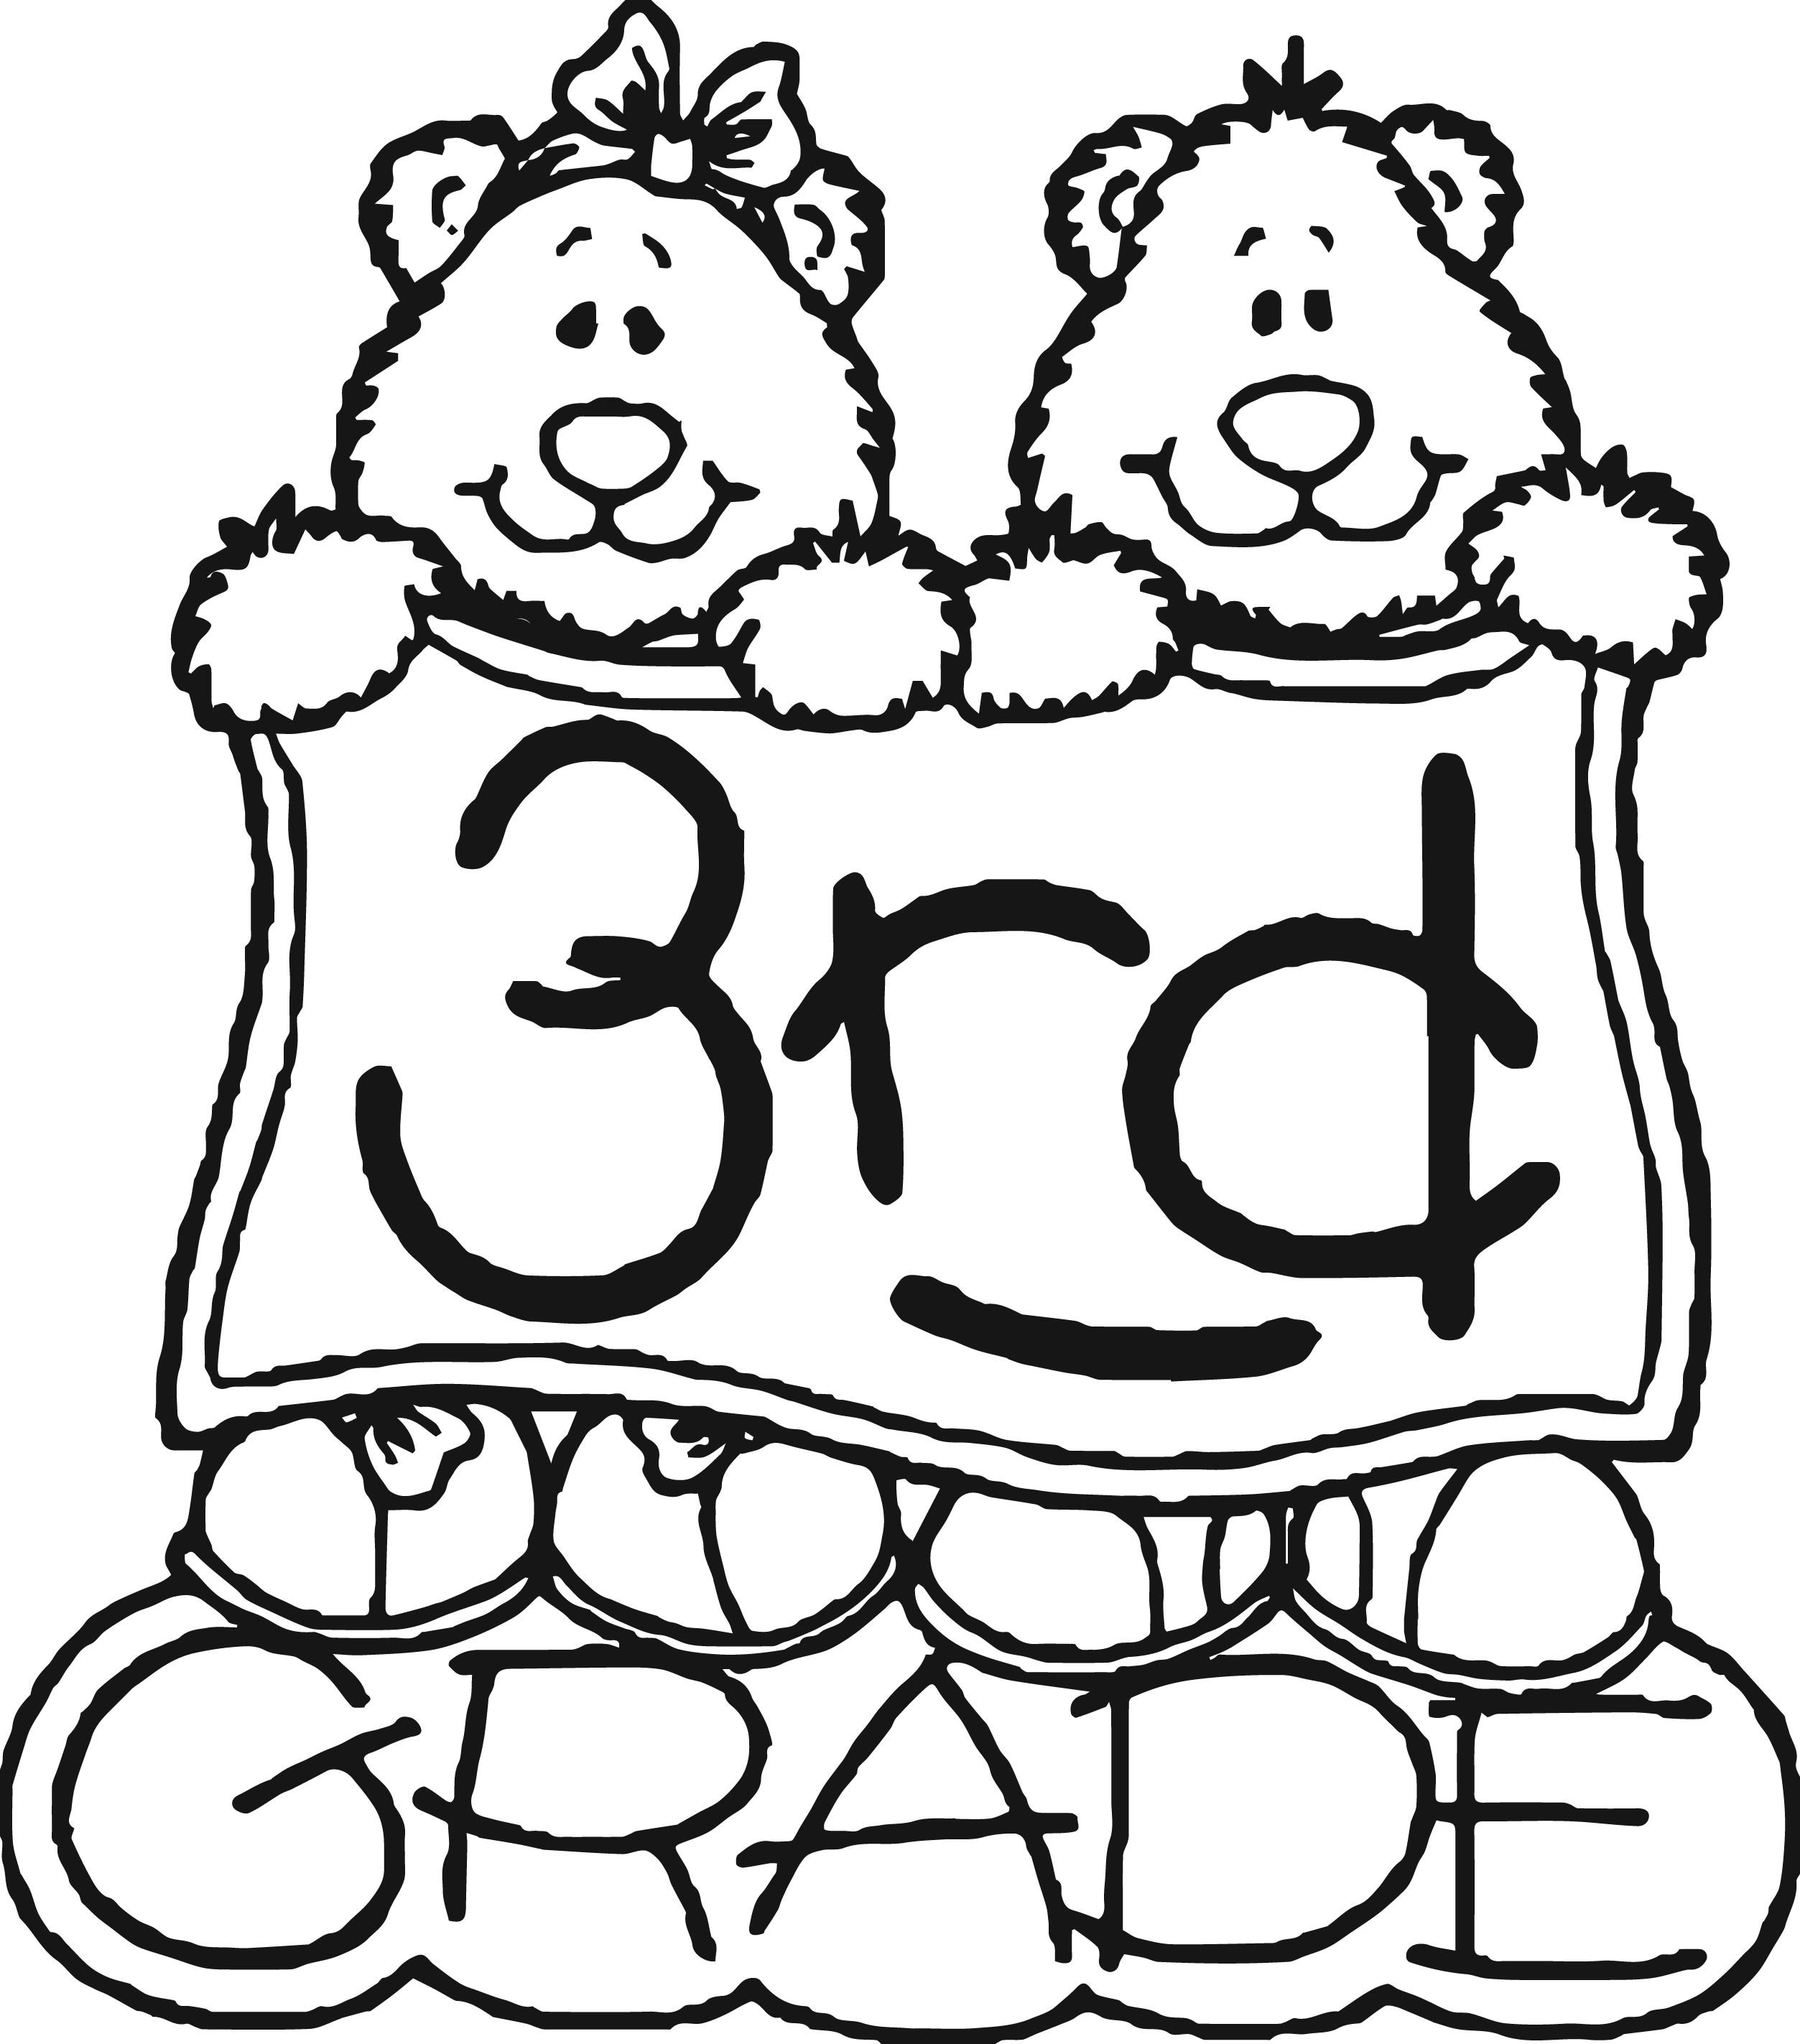 27 2nd Grade Coloring Pages Collections | FREE COLORING PAGES - Part 3